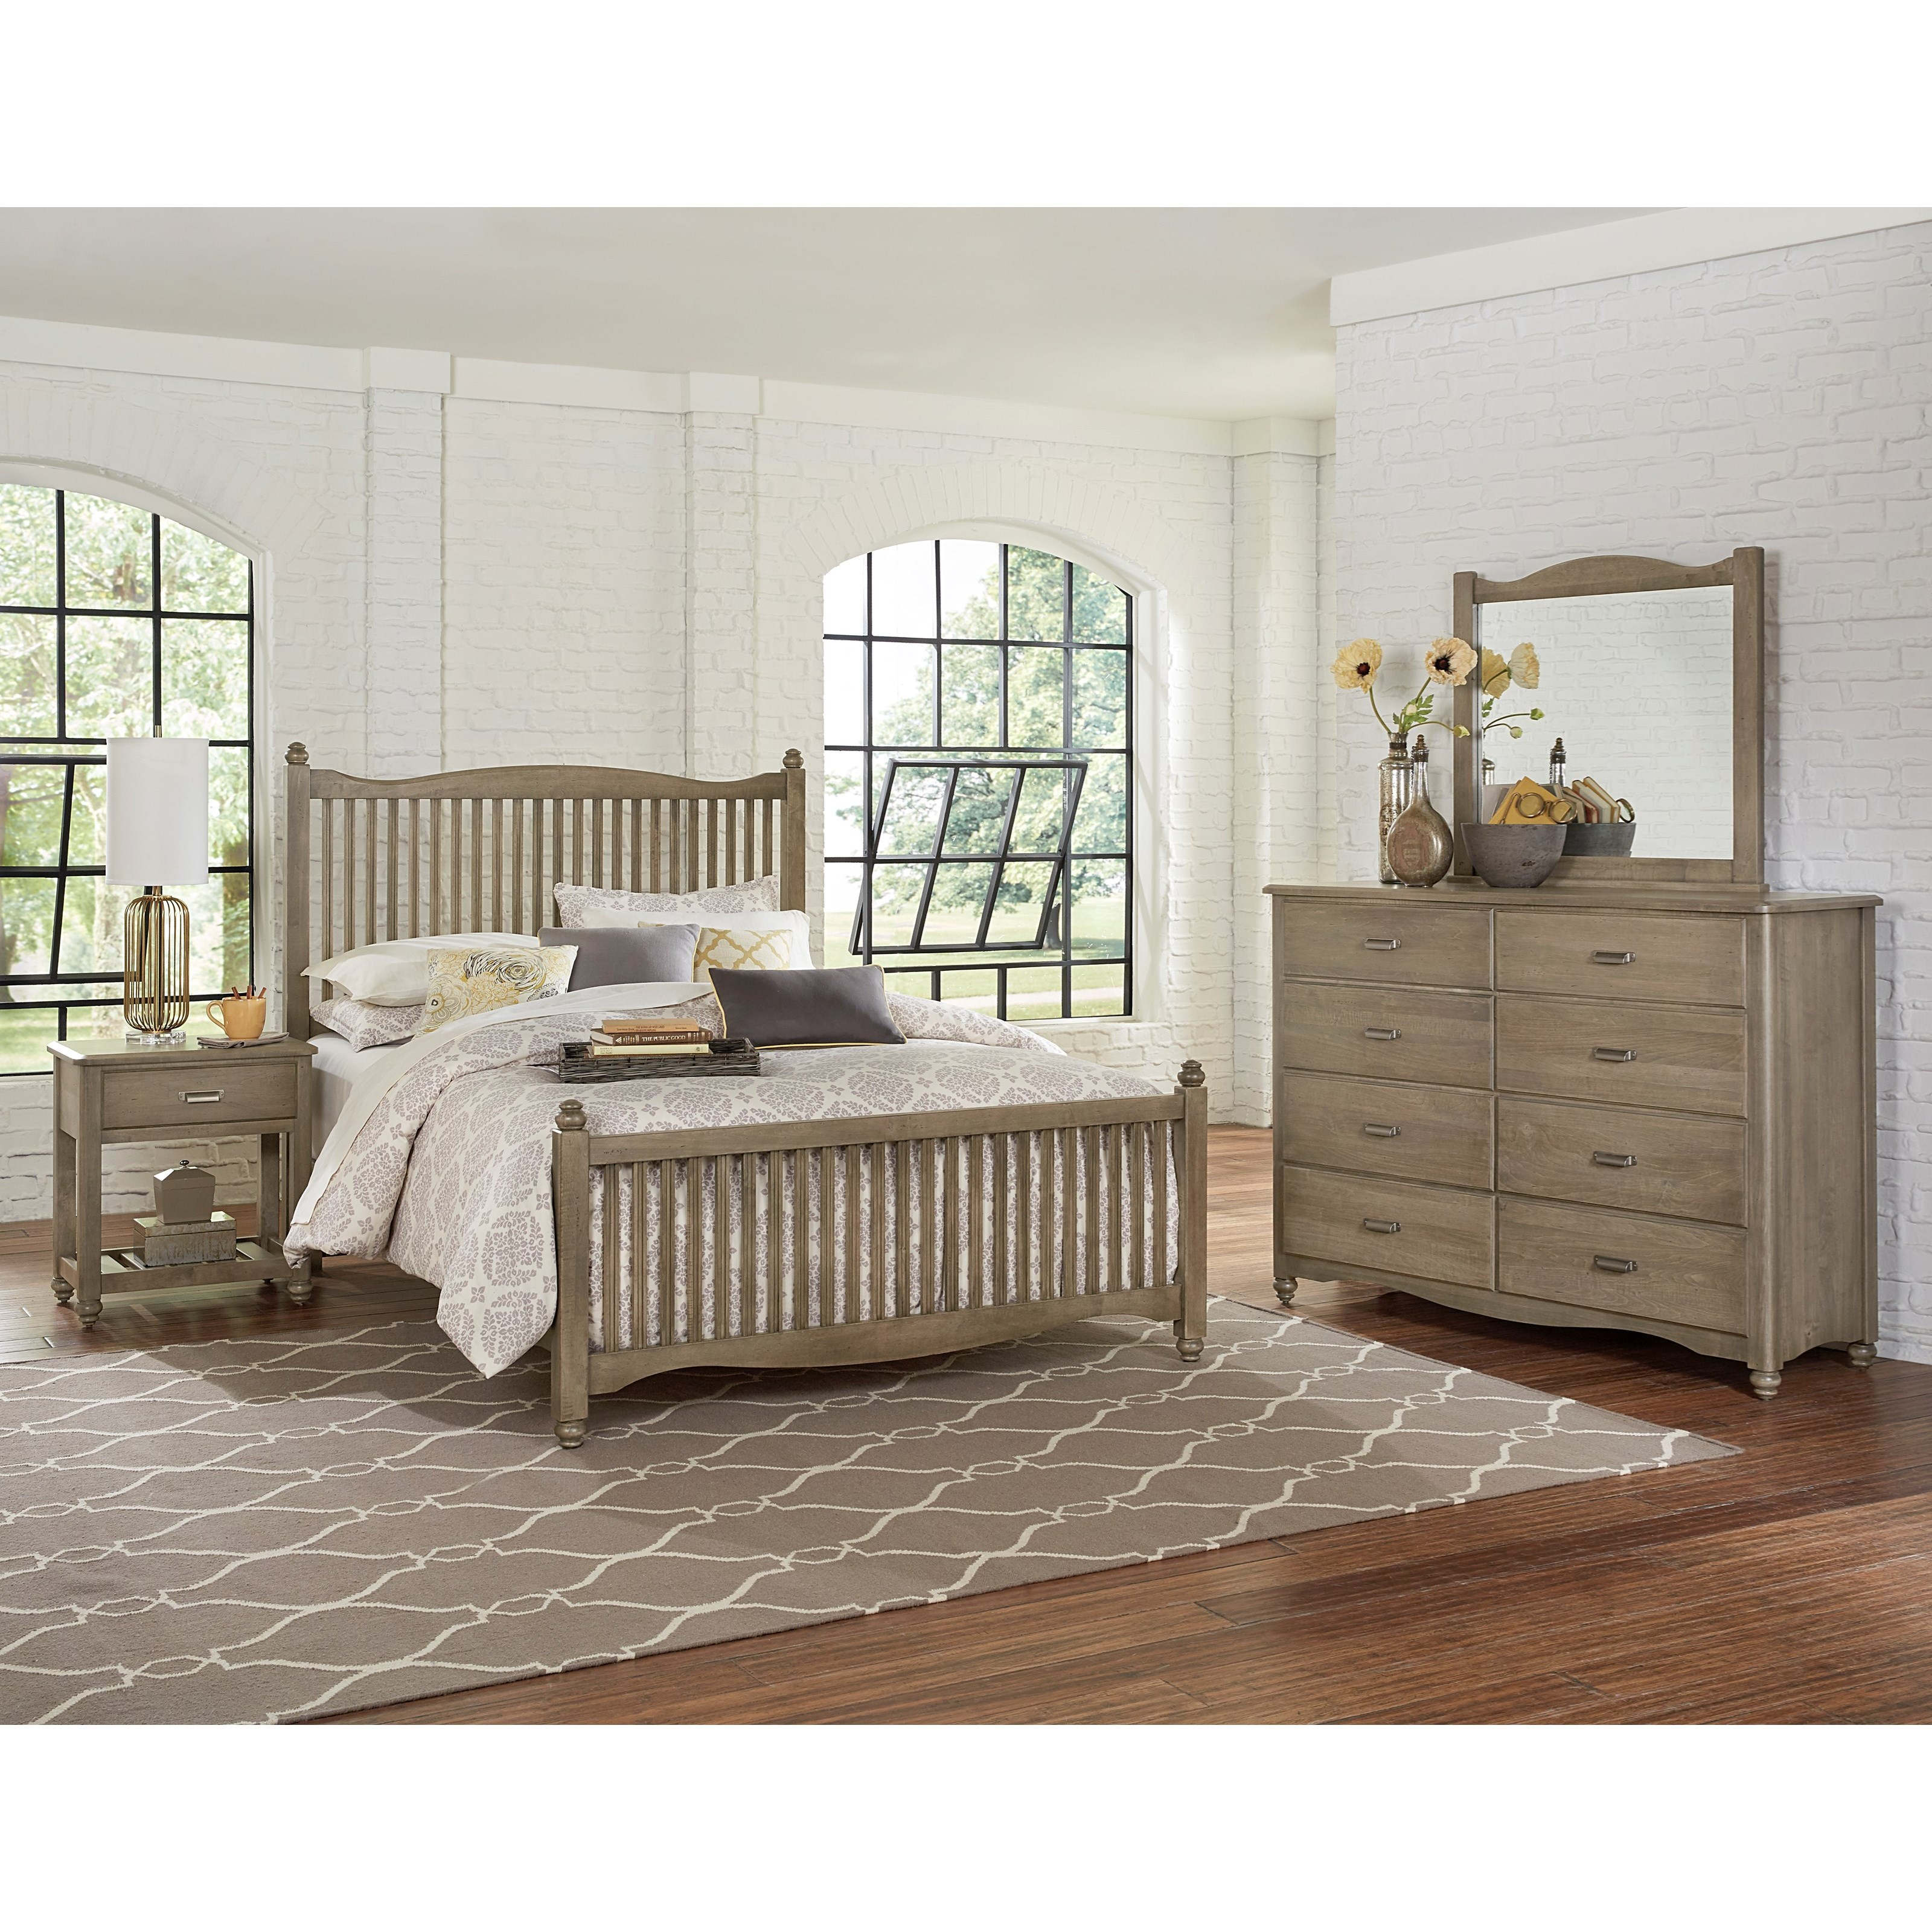 Vaughan Bassett American Maple Twin Bedroom Group - Item Number: 401 T Bedroom Group 1